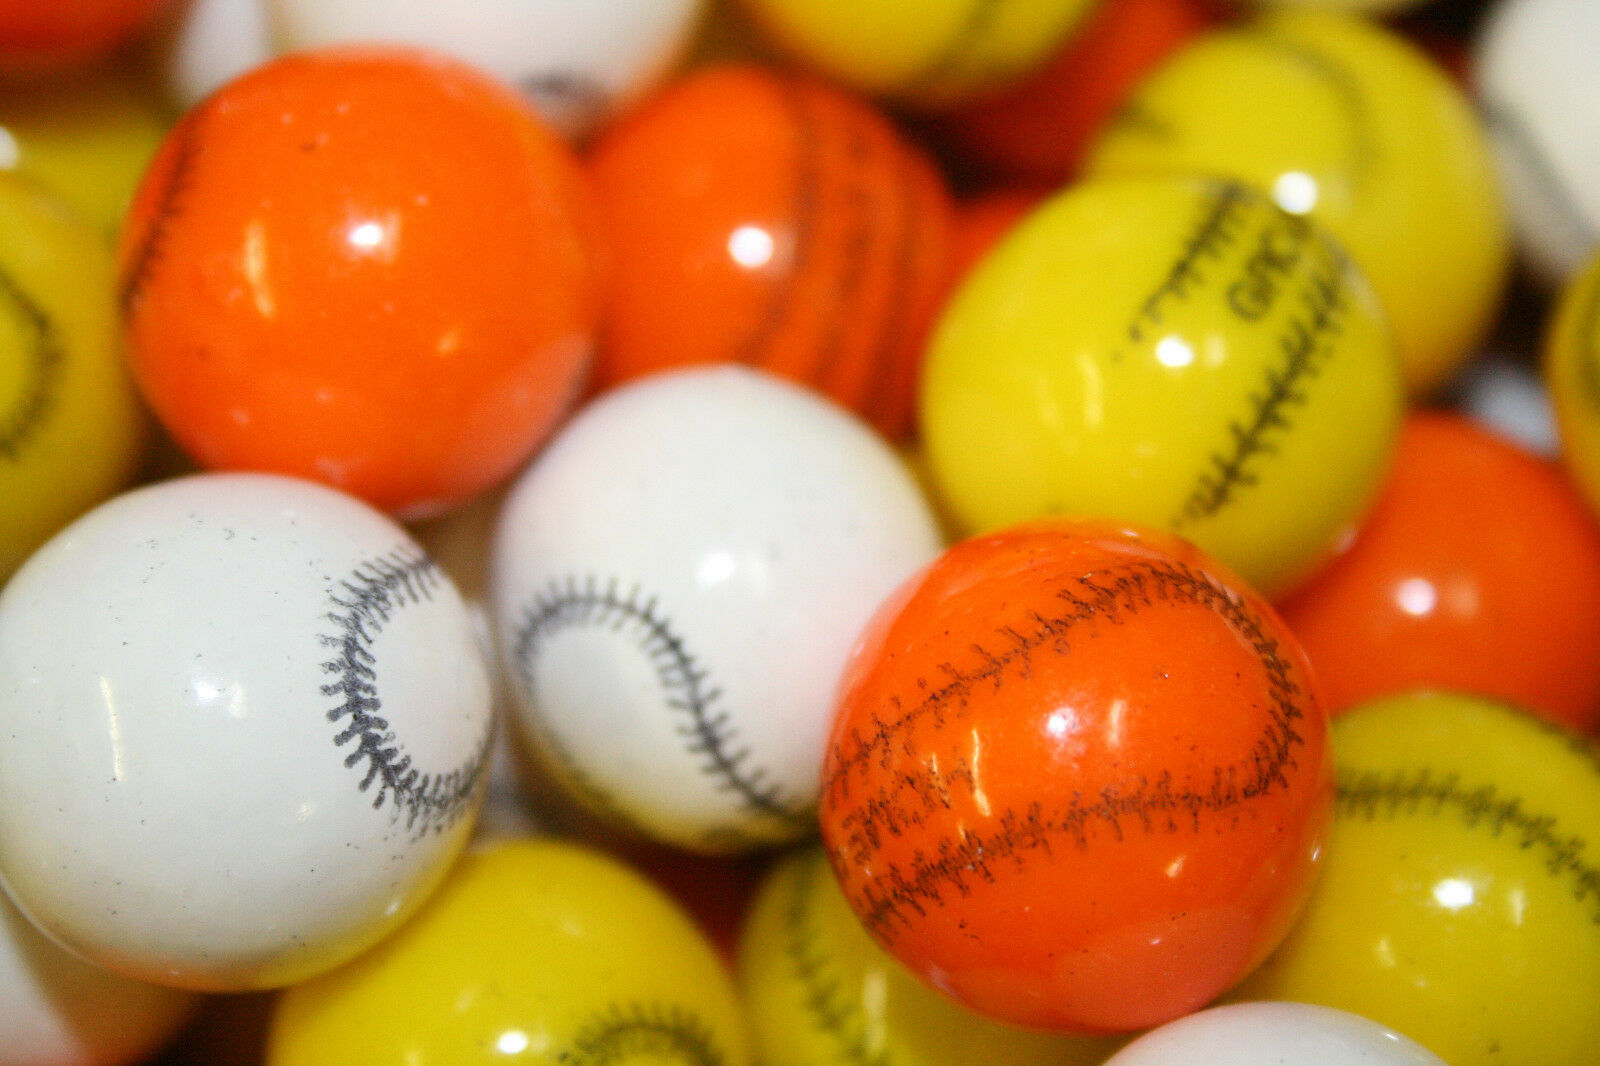 GUMBALLS BASEBALL BUBBLE GUM 25mm or 1 inch (285 count), 5LBS - $29.33